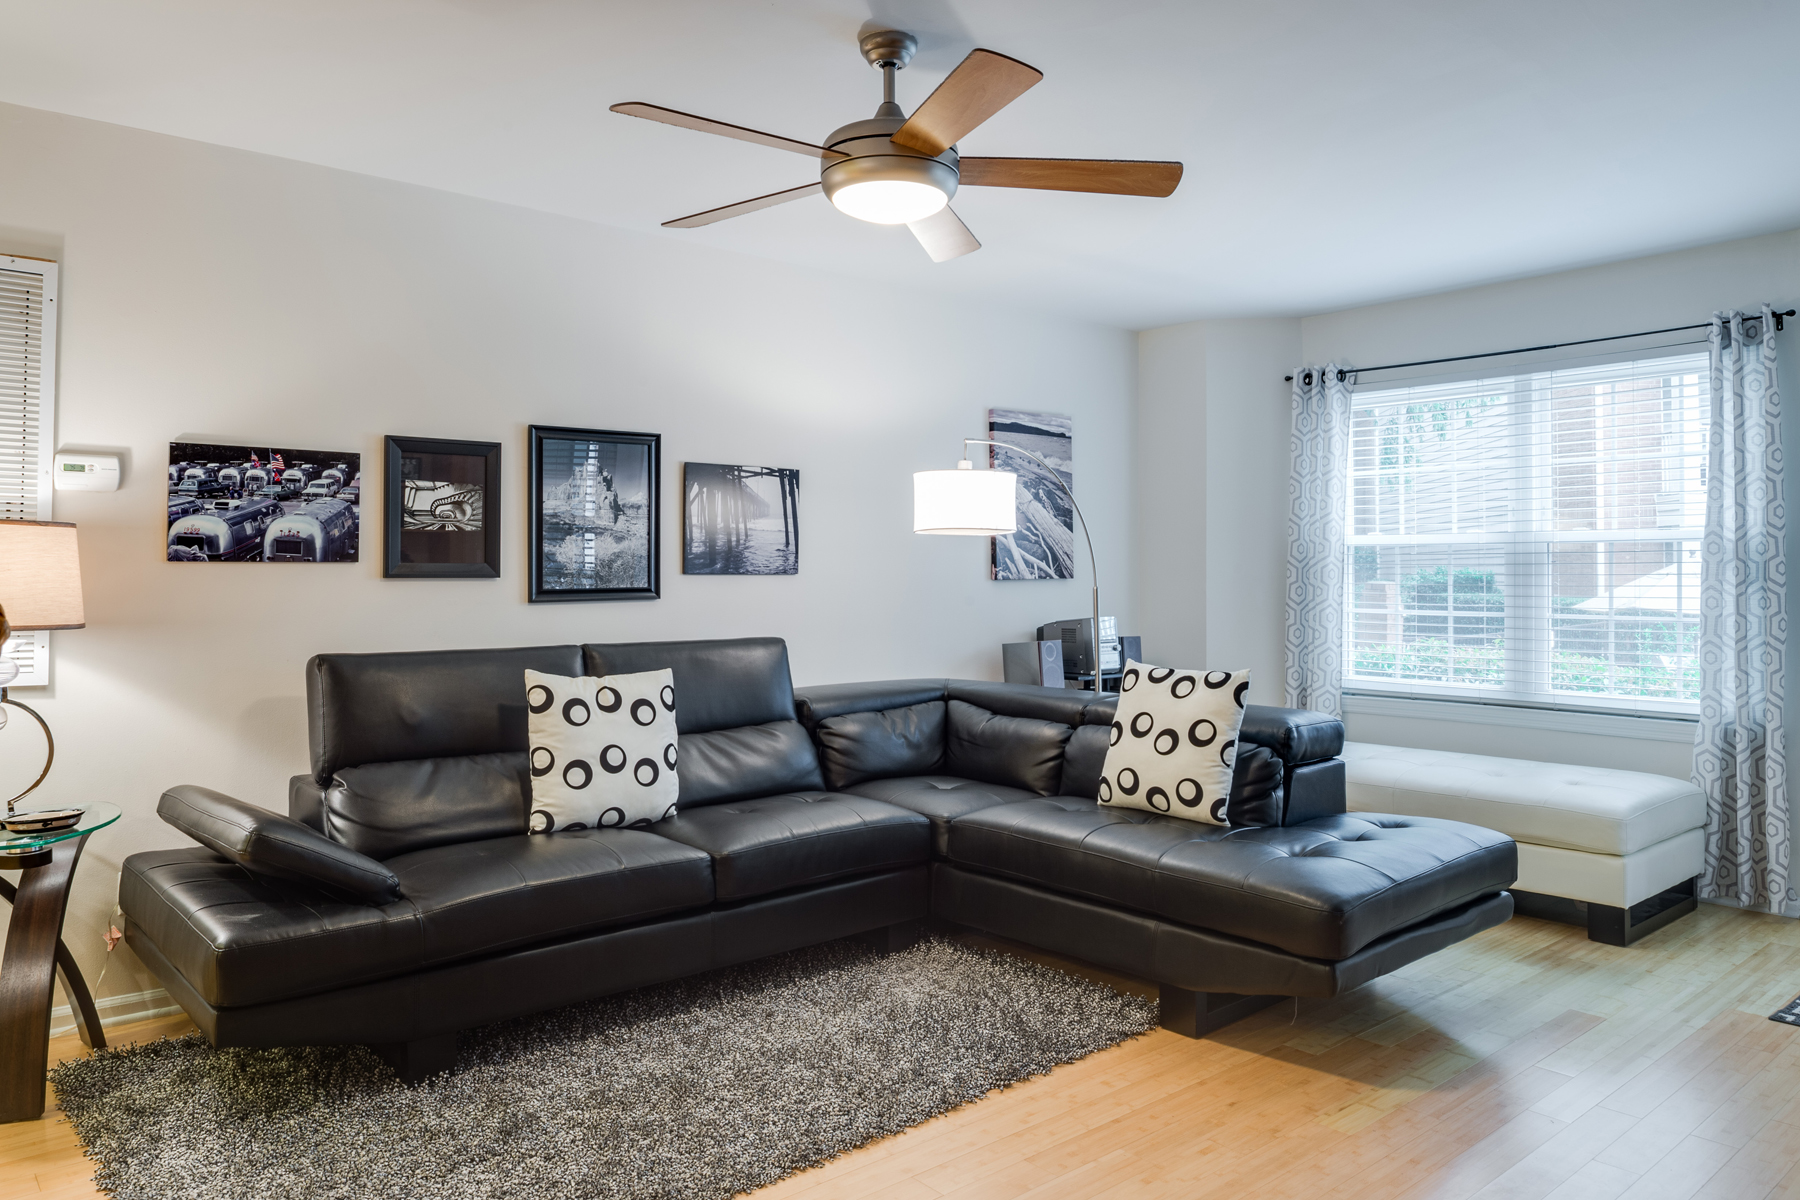 Property For Sale at Intown Living/Chastain Park